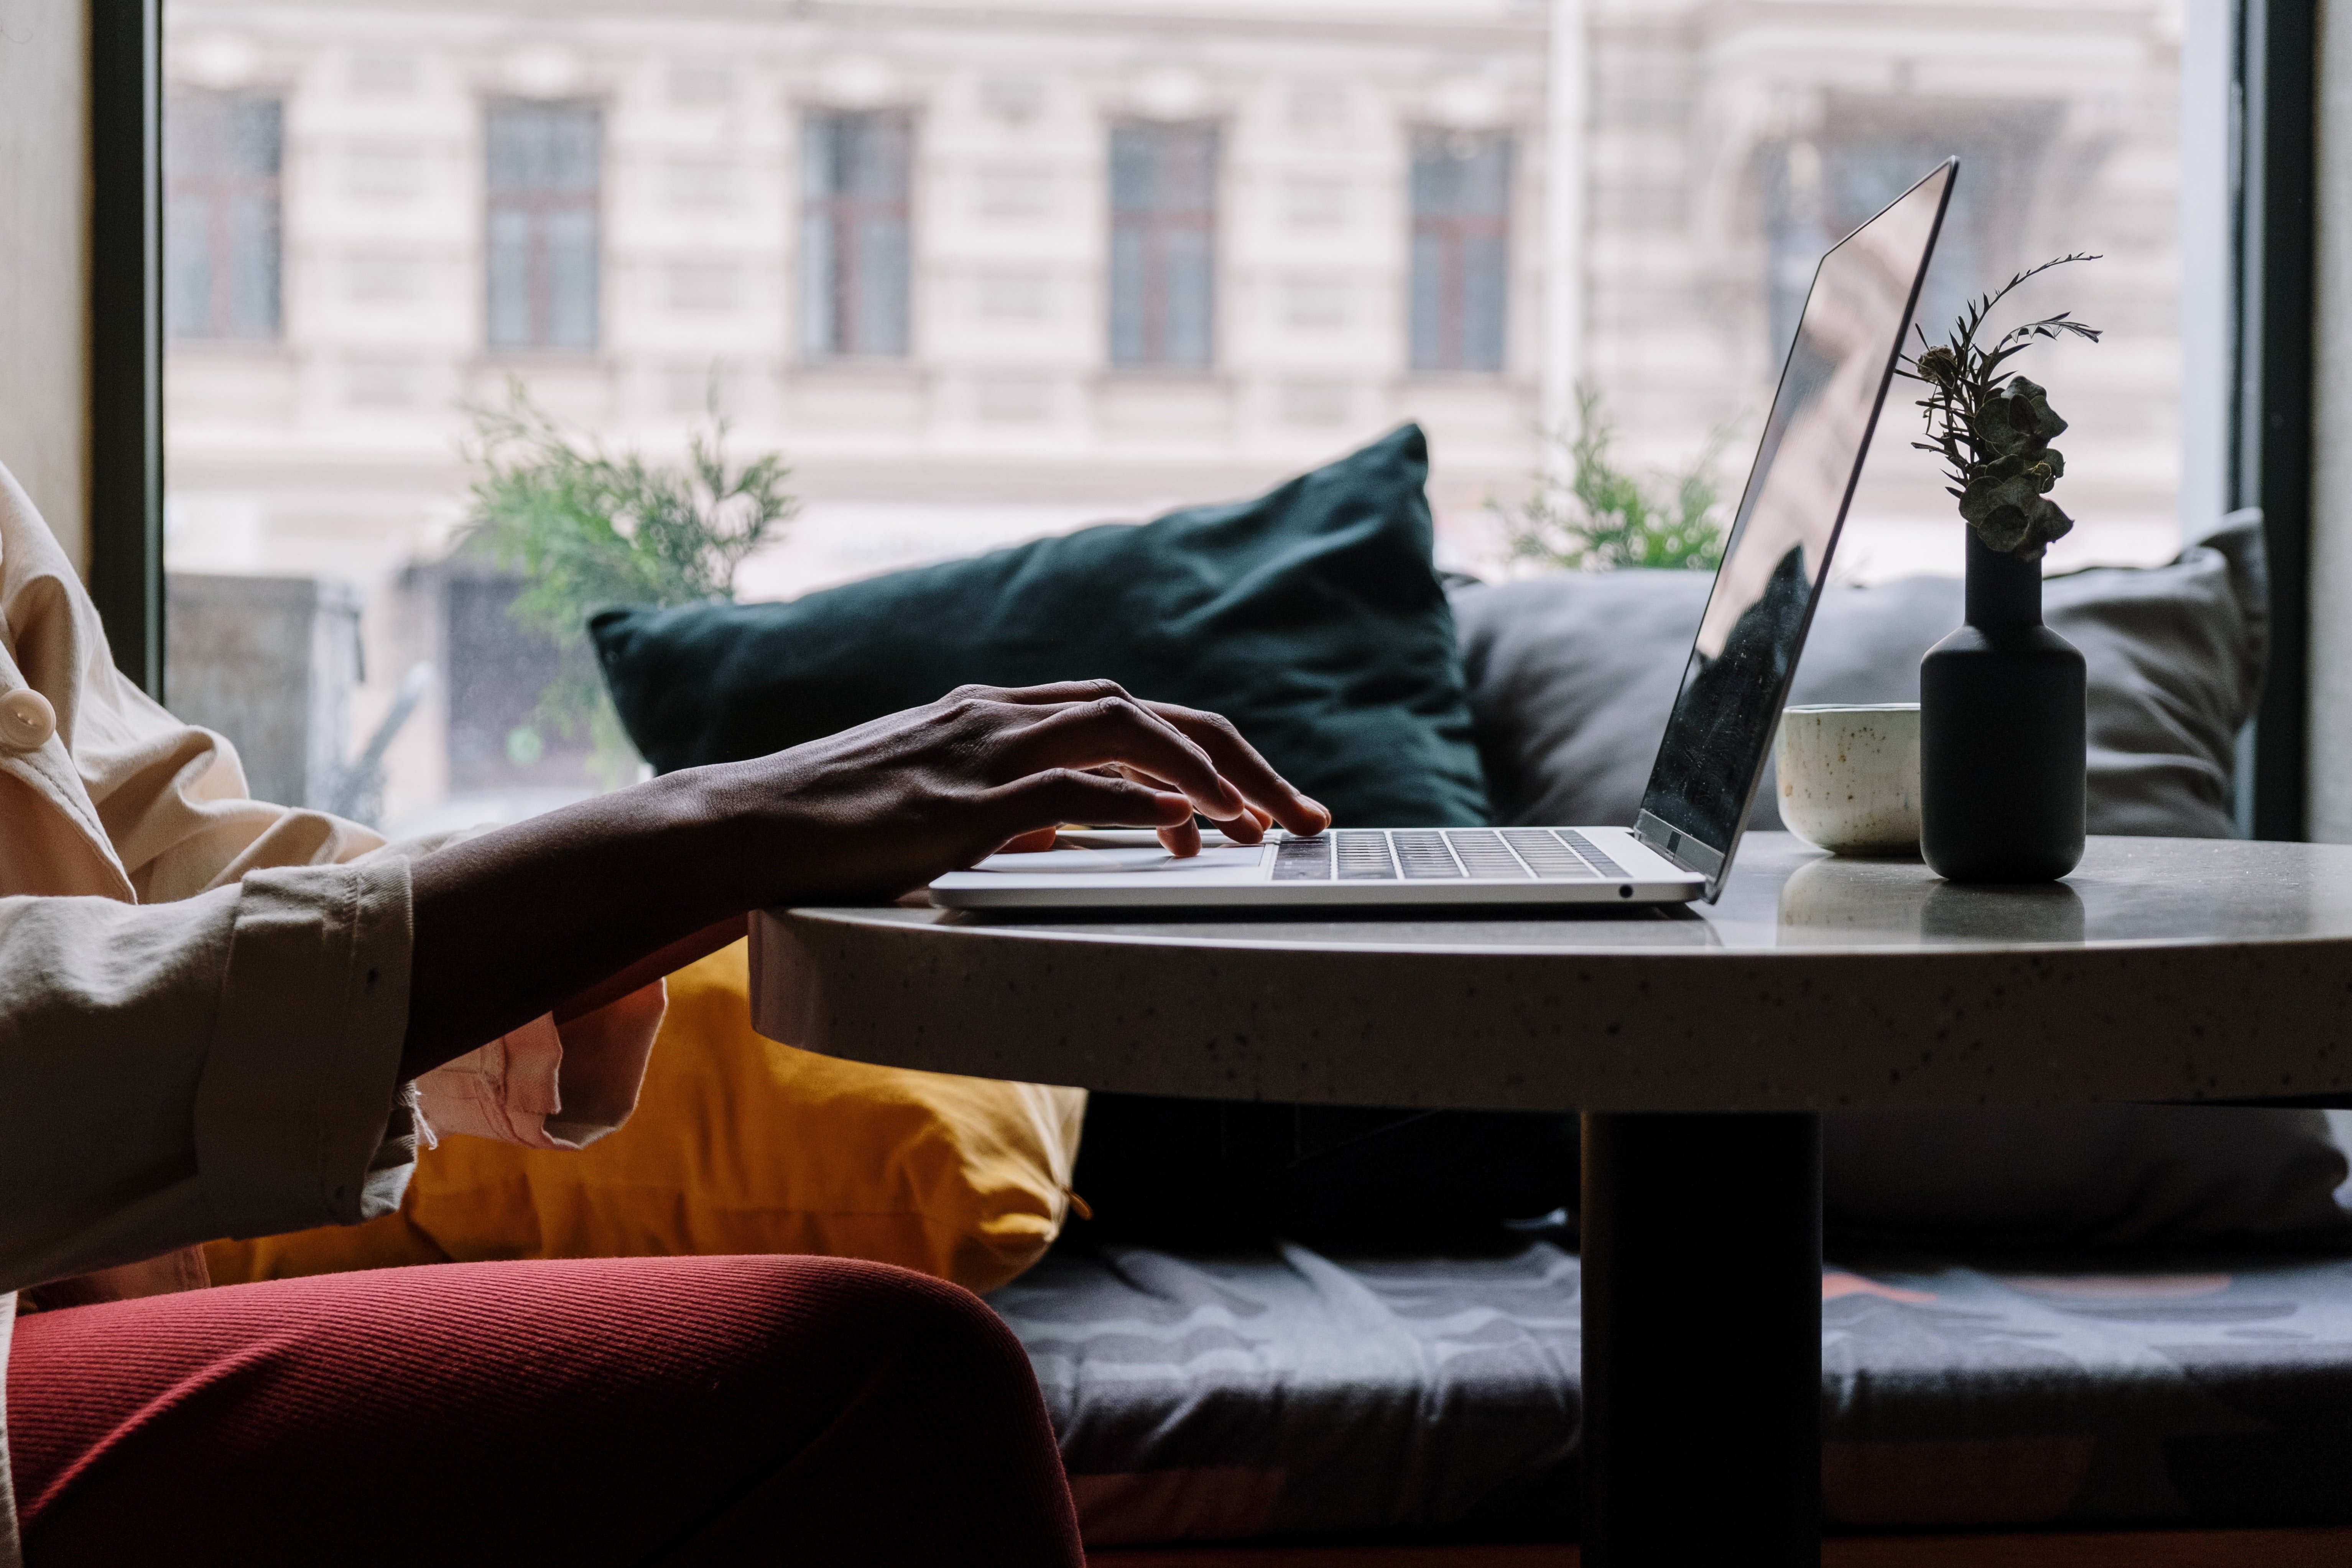 Person sitting at desk using a laptop